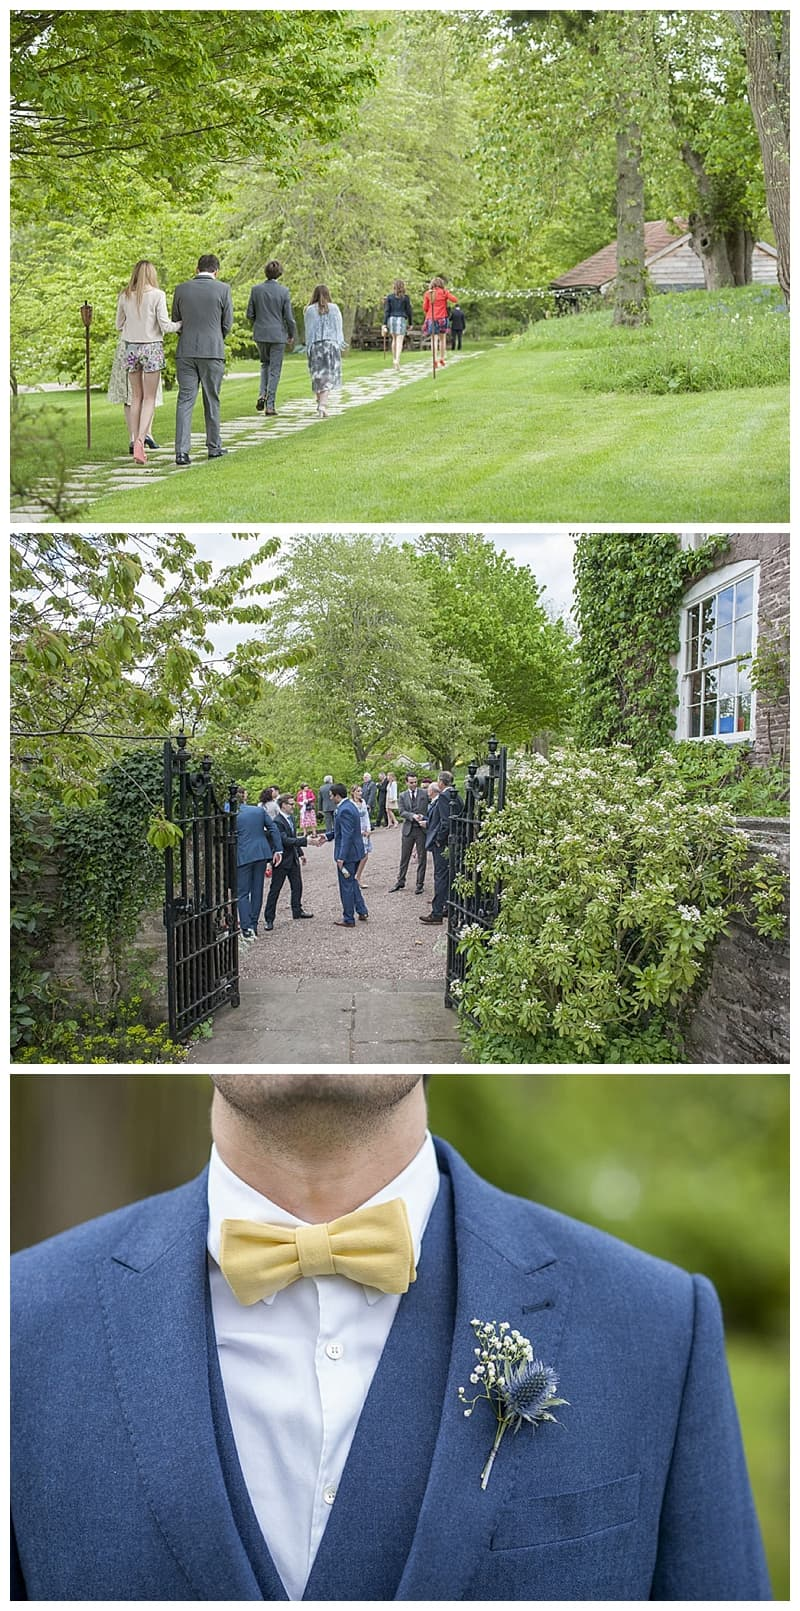 Dewsall Court Wedding, Fran & Alex, Herefordshire Wedding - Benjamin Wetherall Photography ©0028